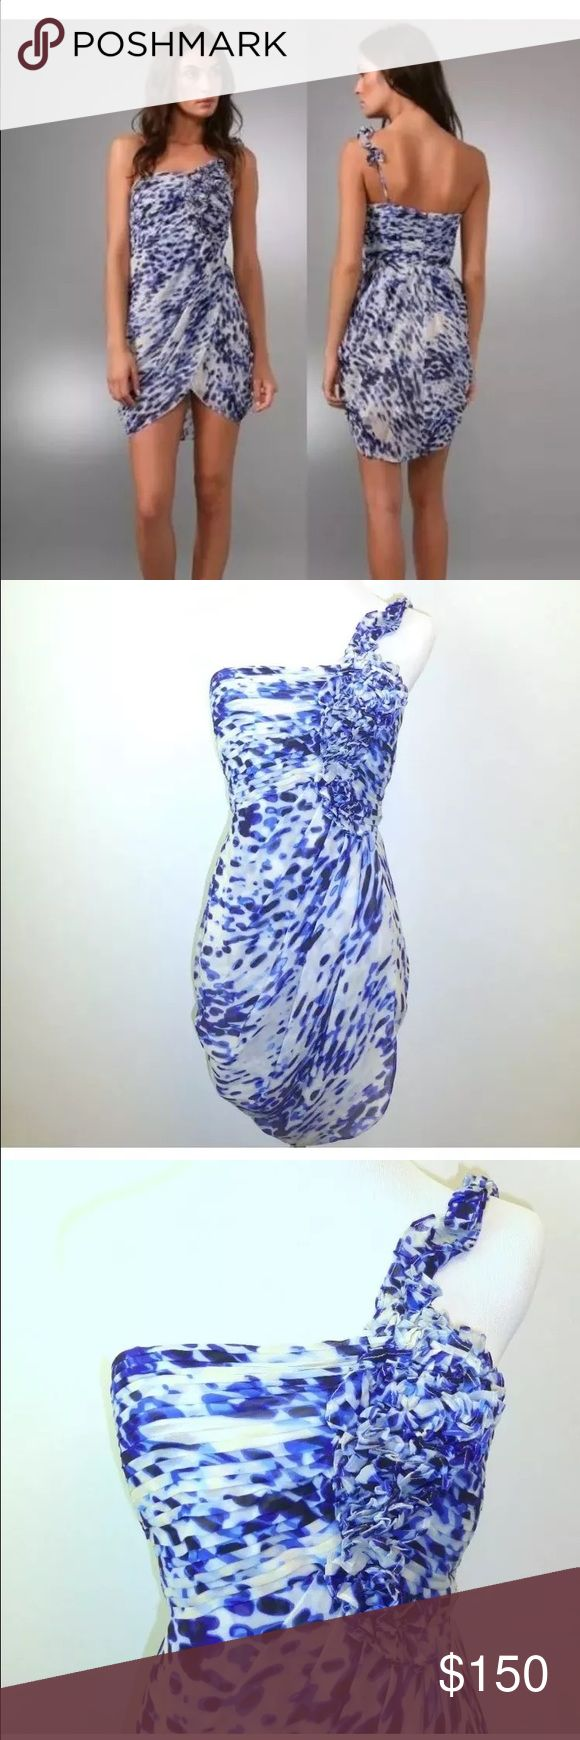 BCBGMax Azria one shoulder animal print silk dress Gorgeous 100% silk blue combo cocktail one shoulder ruffled adjustable strap dress. Bustier with boning for added support. Fully lined. Back zip slightly longer length in the back. BCBGMaxAzria Dresses